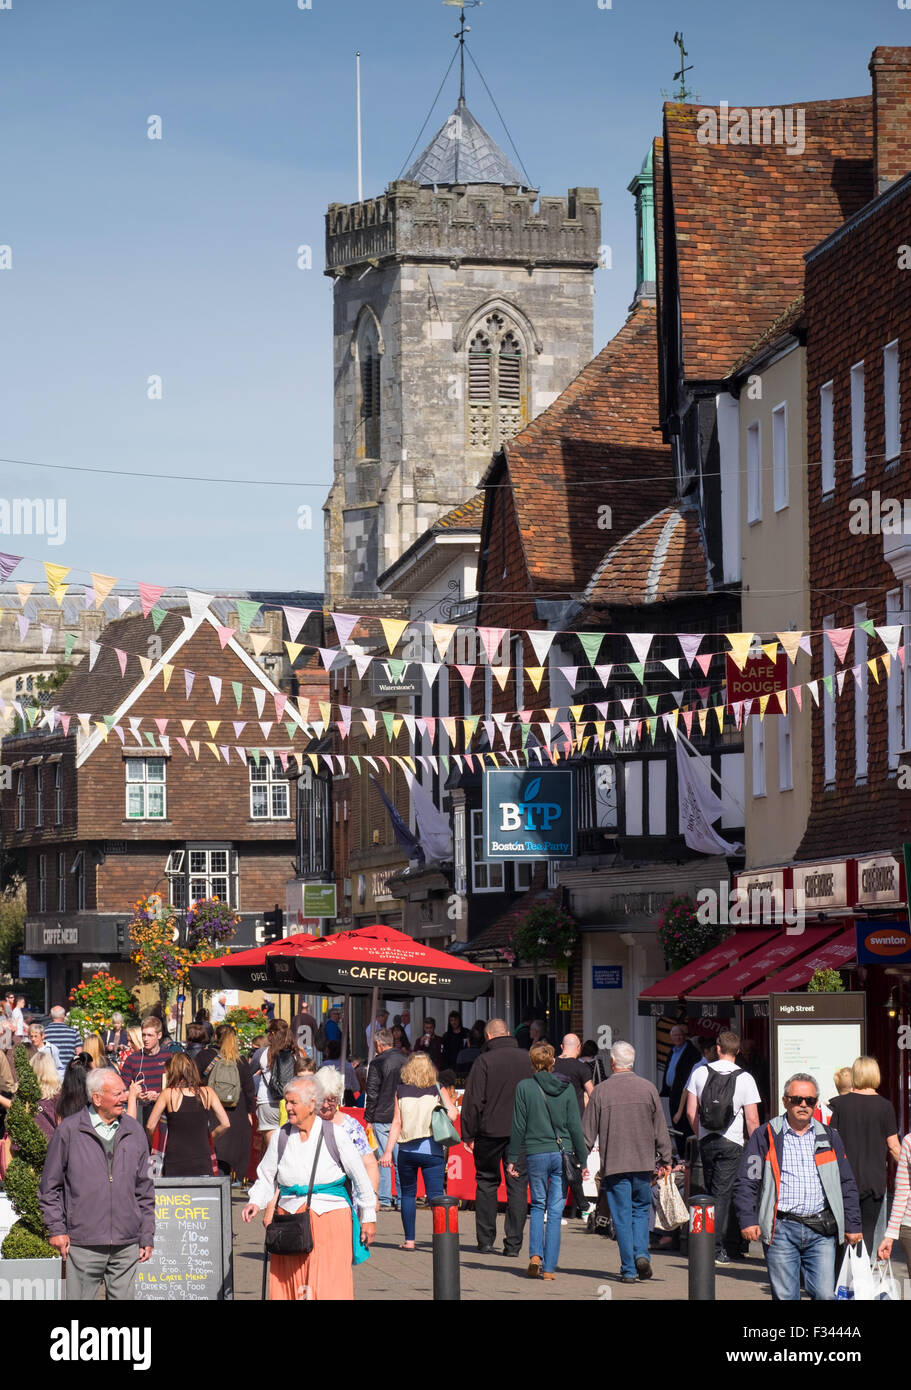 Shoppers in Salisbury High Street, Salisbury, Wiltshire, UK - Stock Image